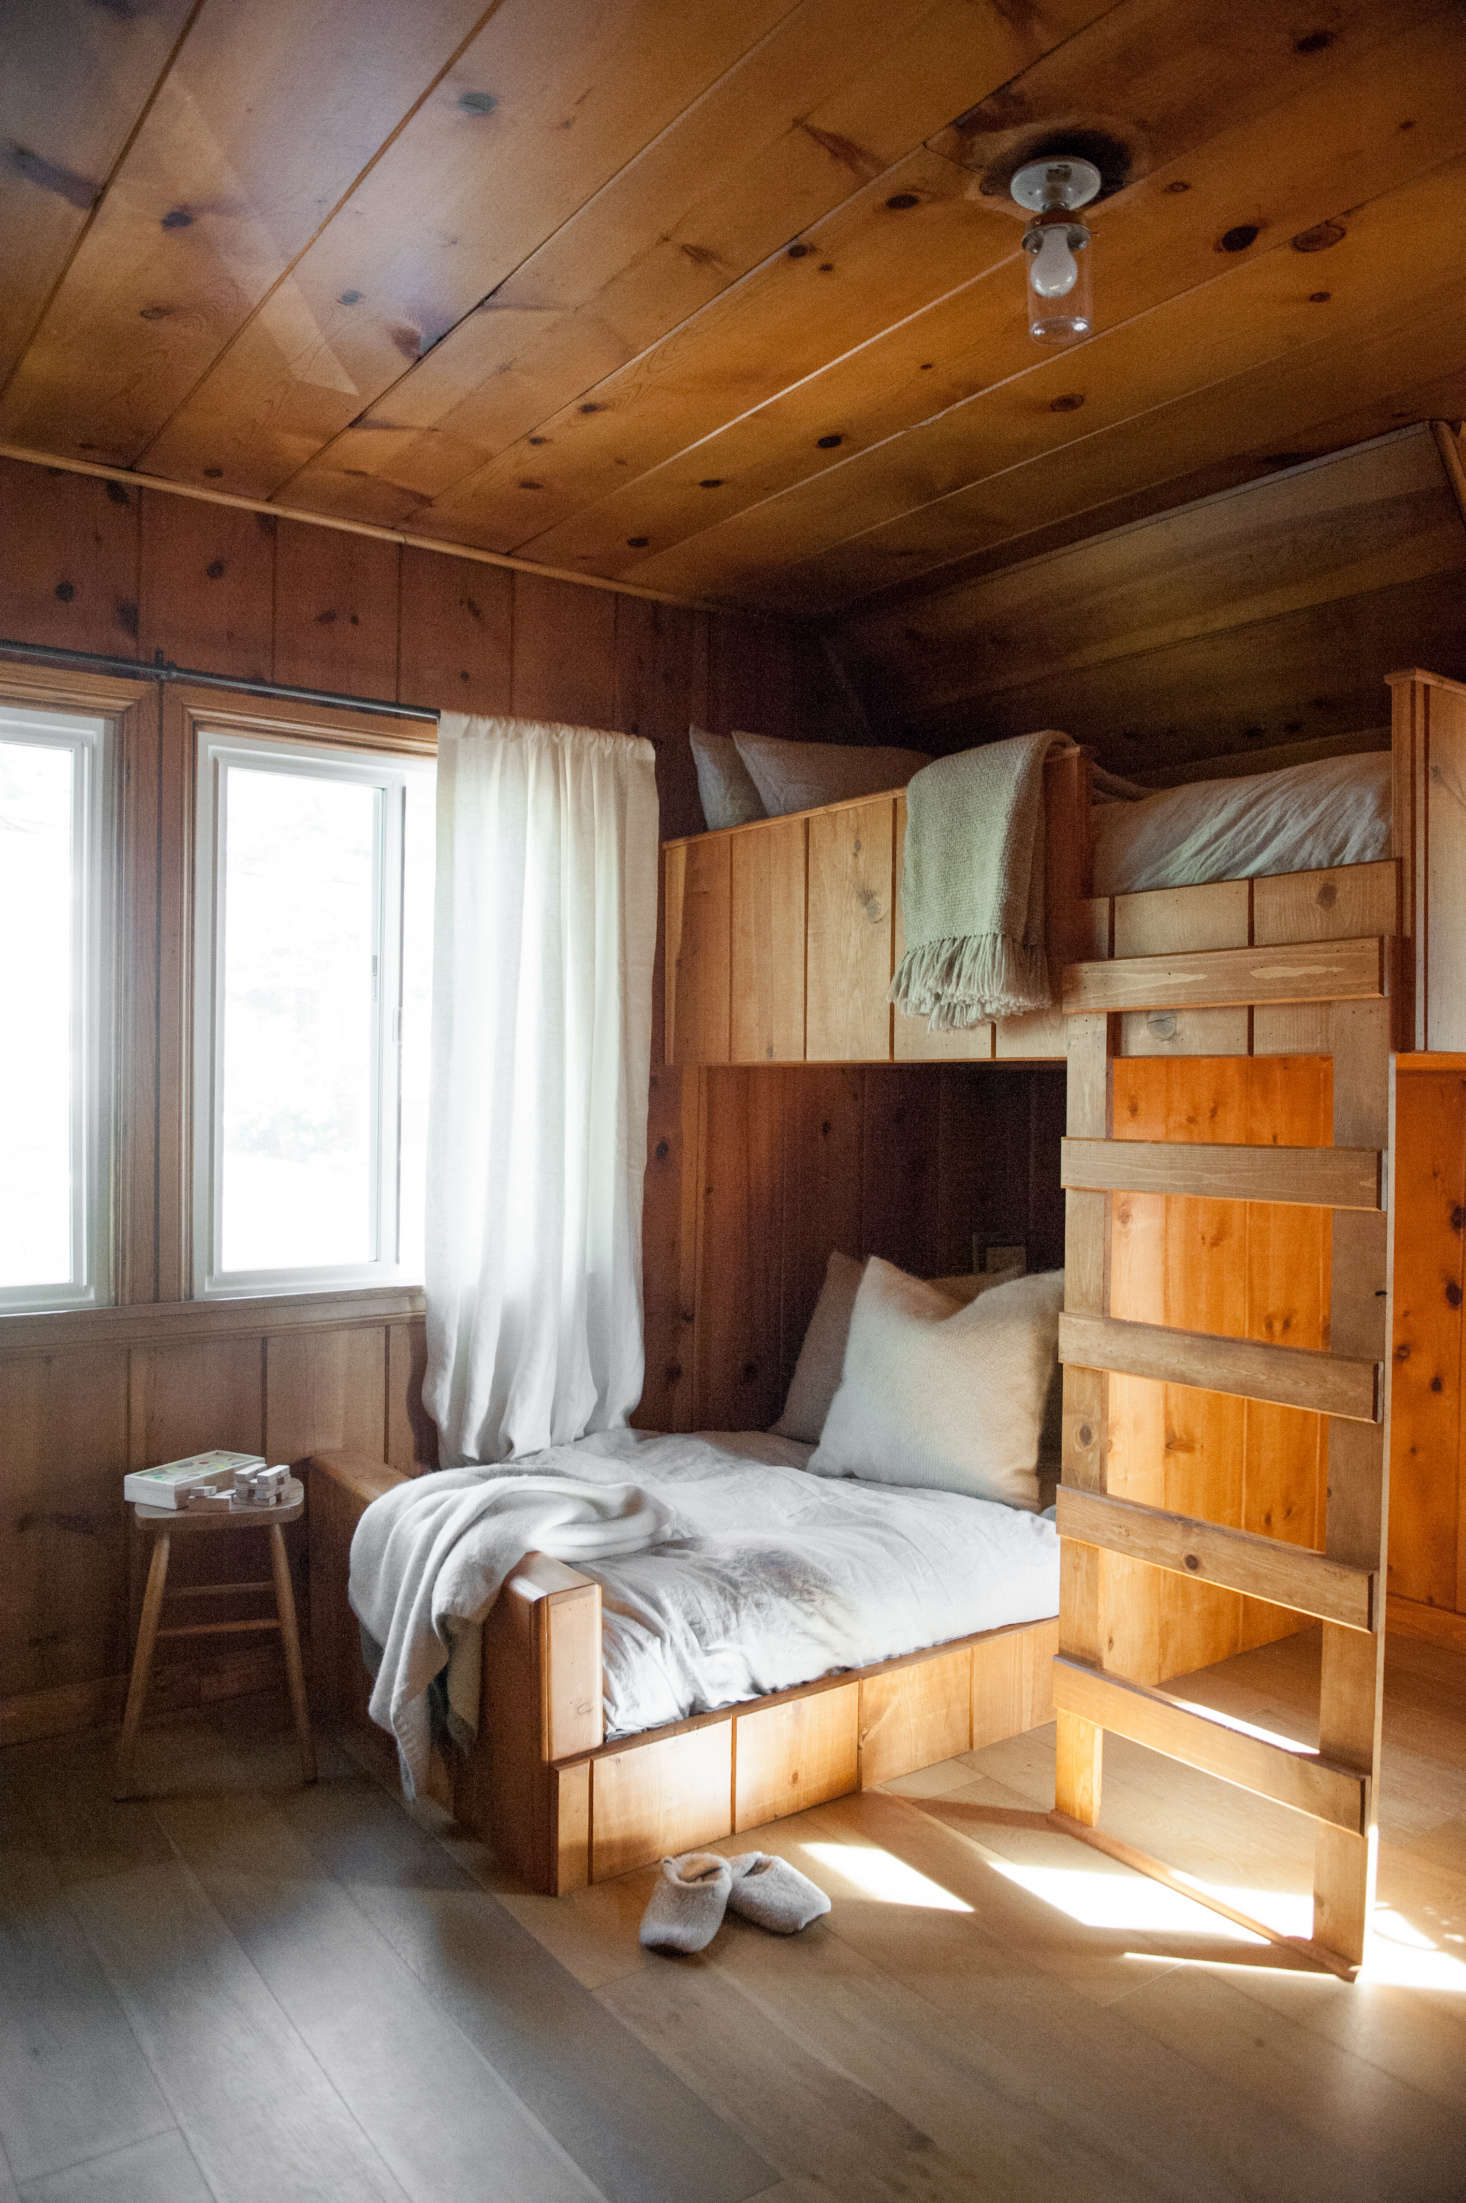 """Lauren designed the custom bunk beds to continue the lines of the existing paneling.""""The staggered configuration of bunks creates some space underneath,"""" she says. """"The setup works with the shape of the room and was inspired by images of Scandinavian cabins and ski chalets."""""""